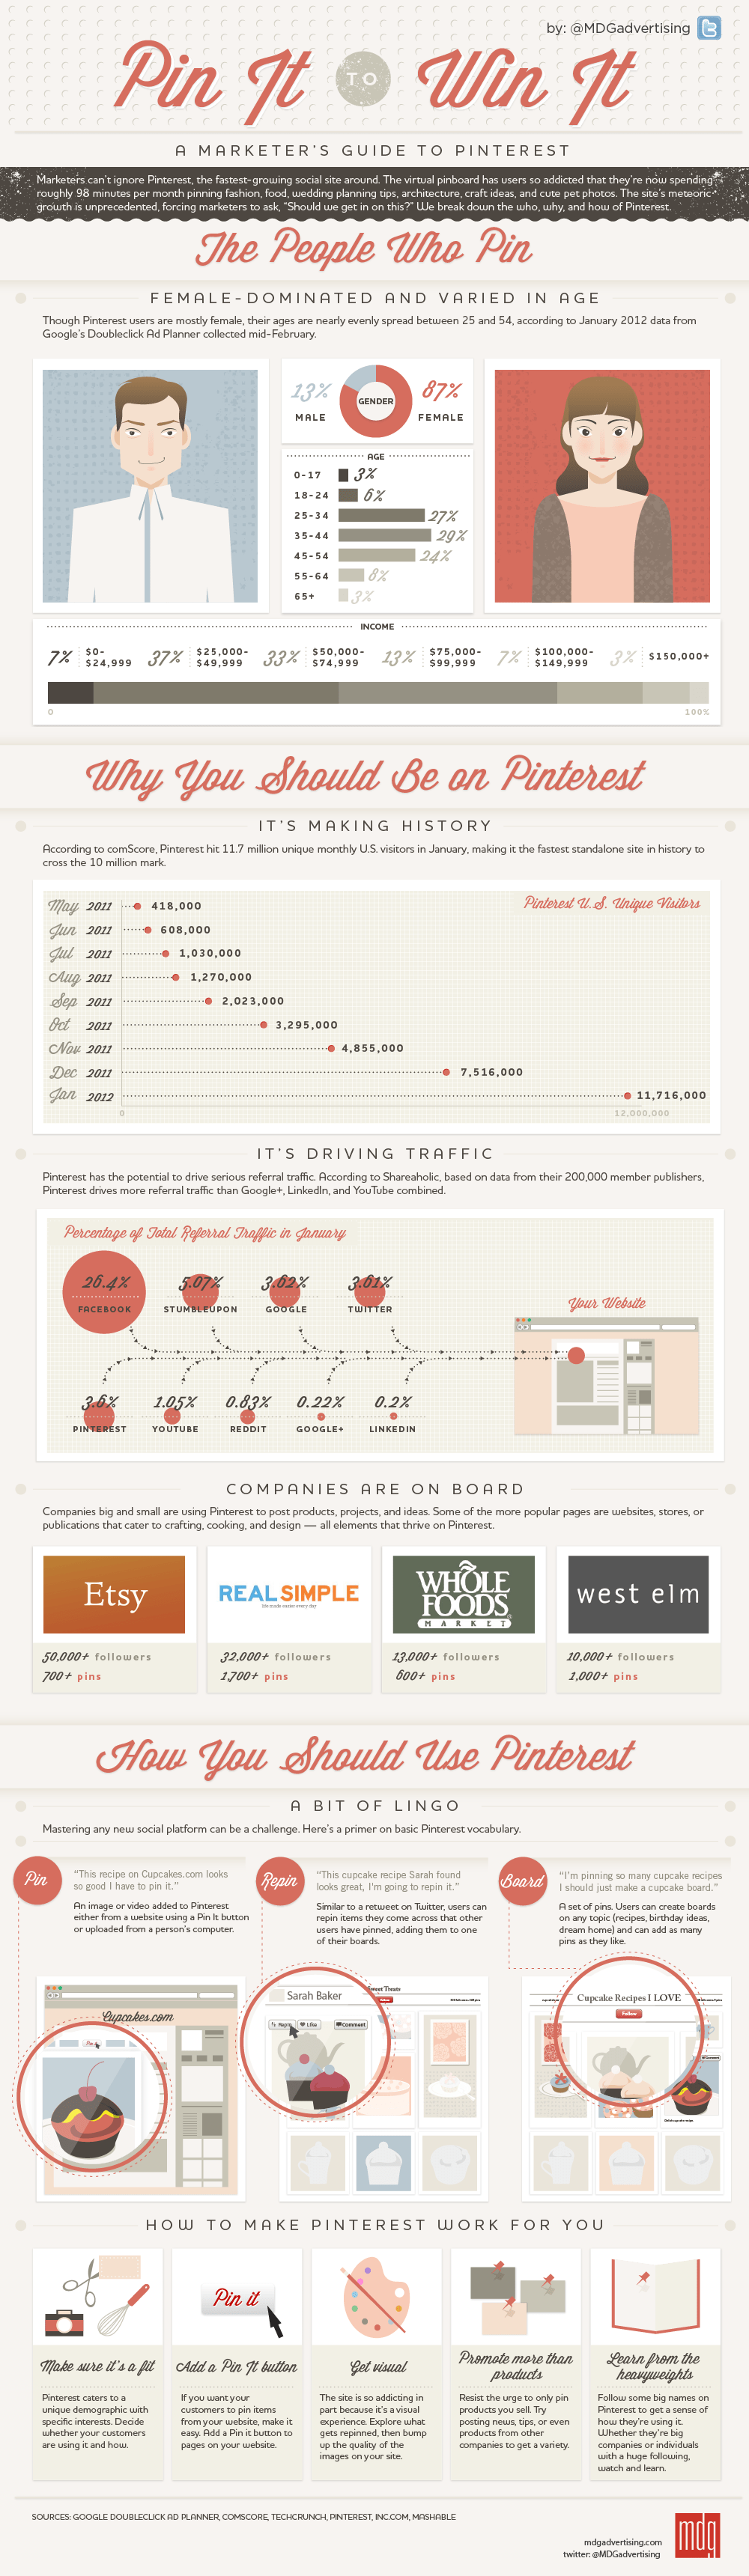 Marketer's Guide To Pinterest: Pin It To Win It [infographic by MDG Advertising]